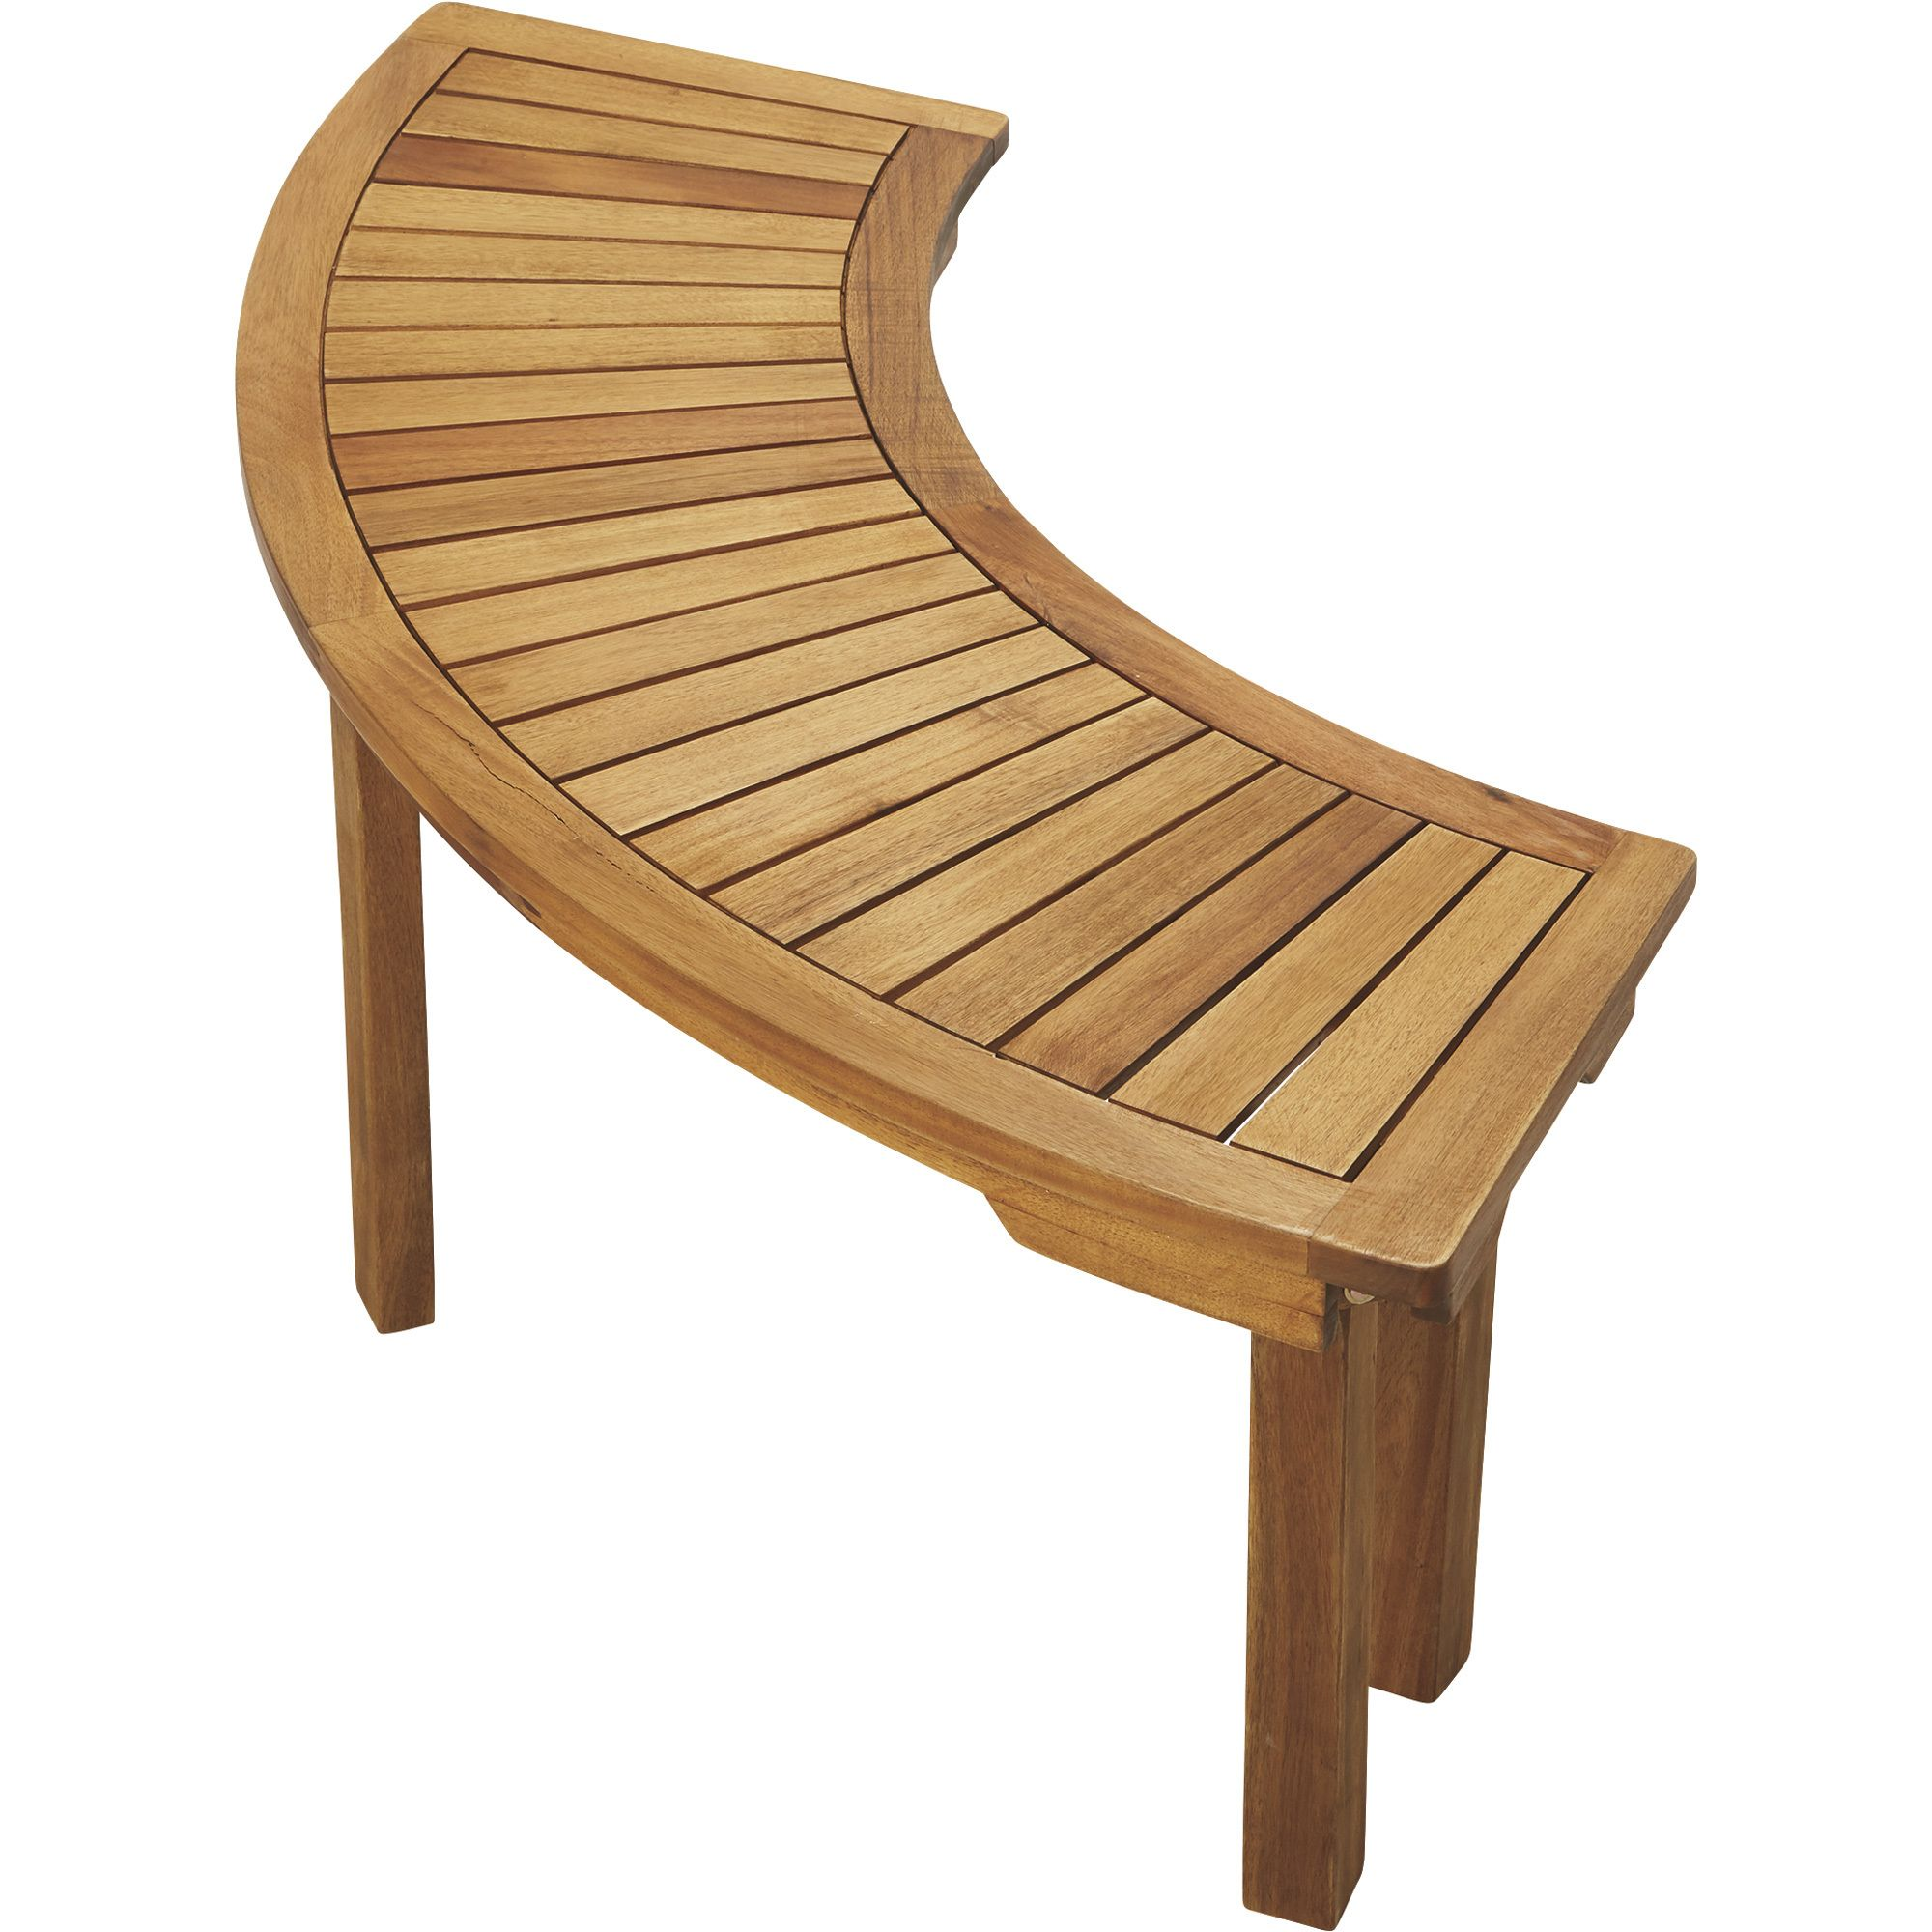 Curved Acacia Wood Backless Bench Natural Acacia Wood Wood Deck Tiles Curved Bench